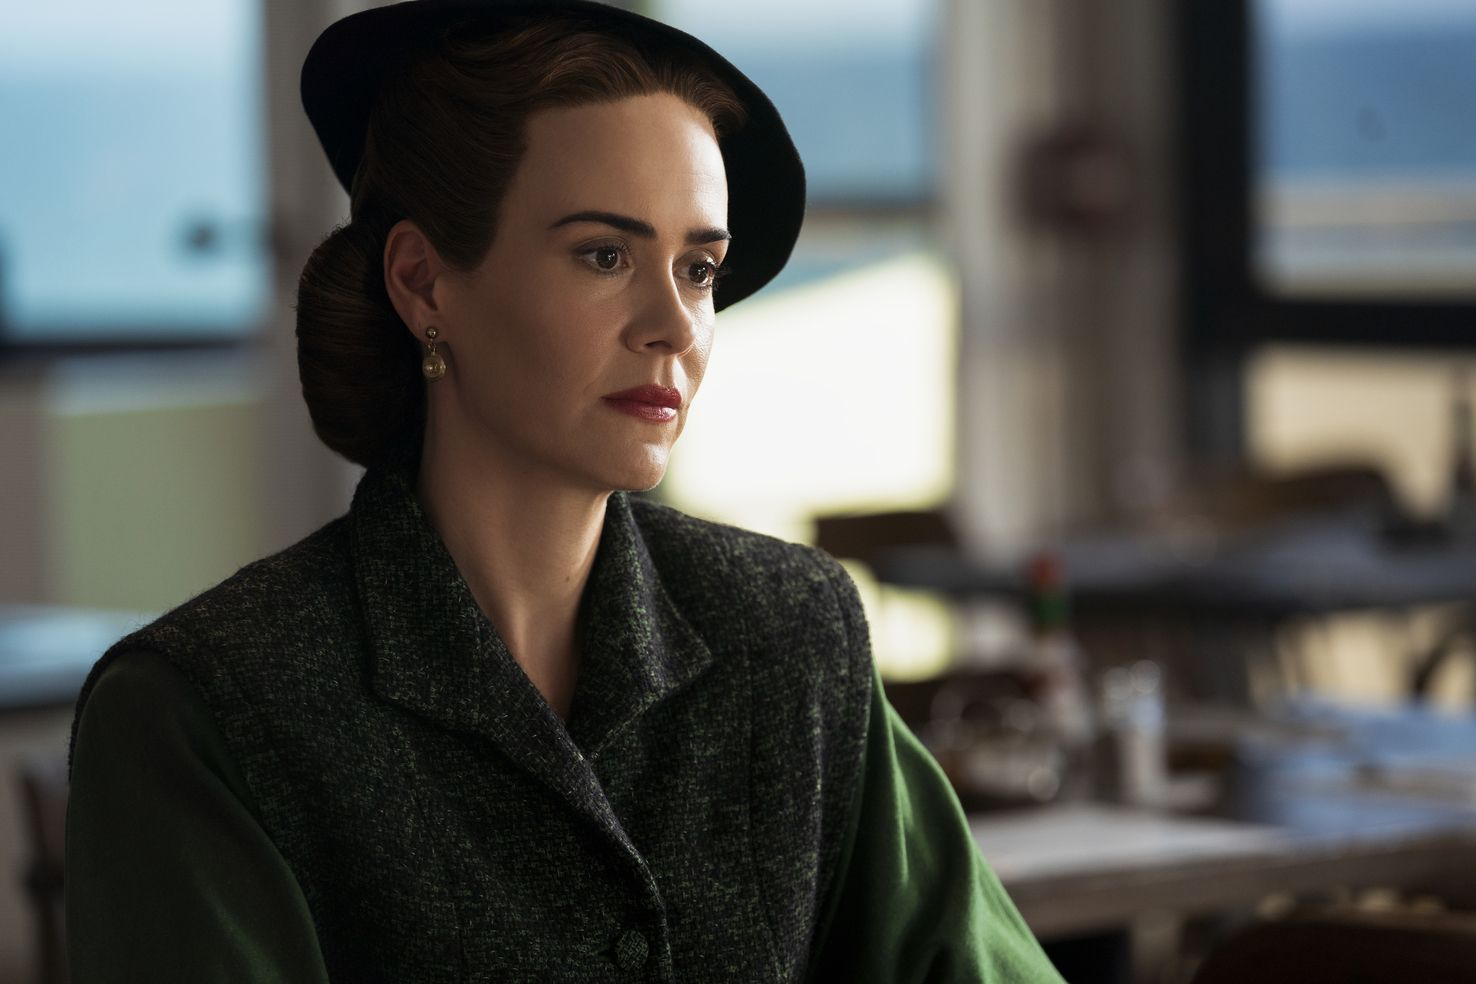 Sarah Paulson Doesn't See Nurse Ratched As a Villain